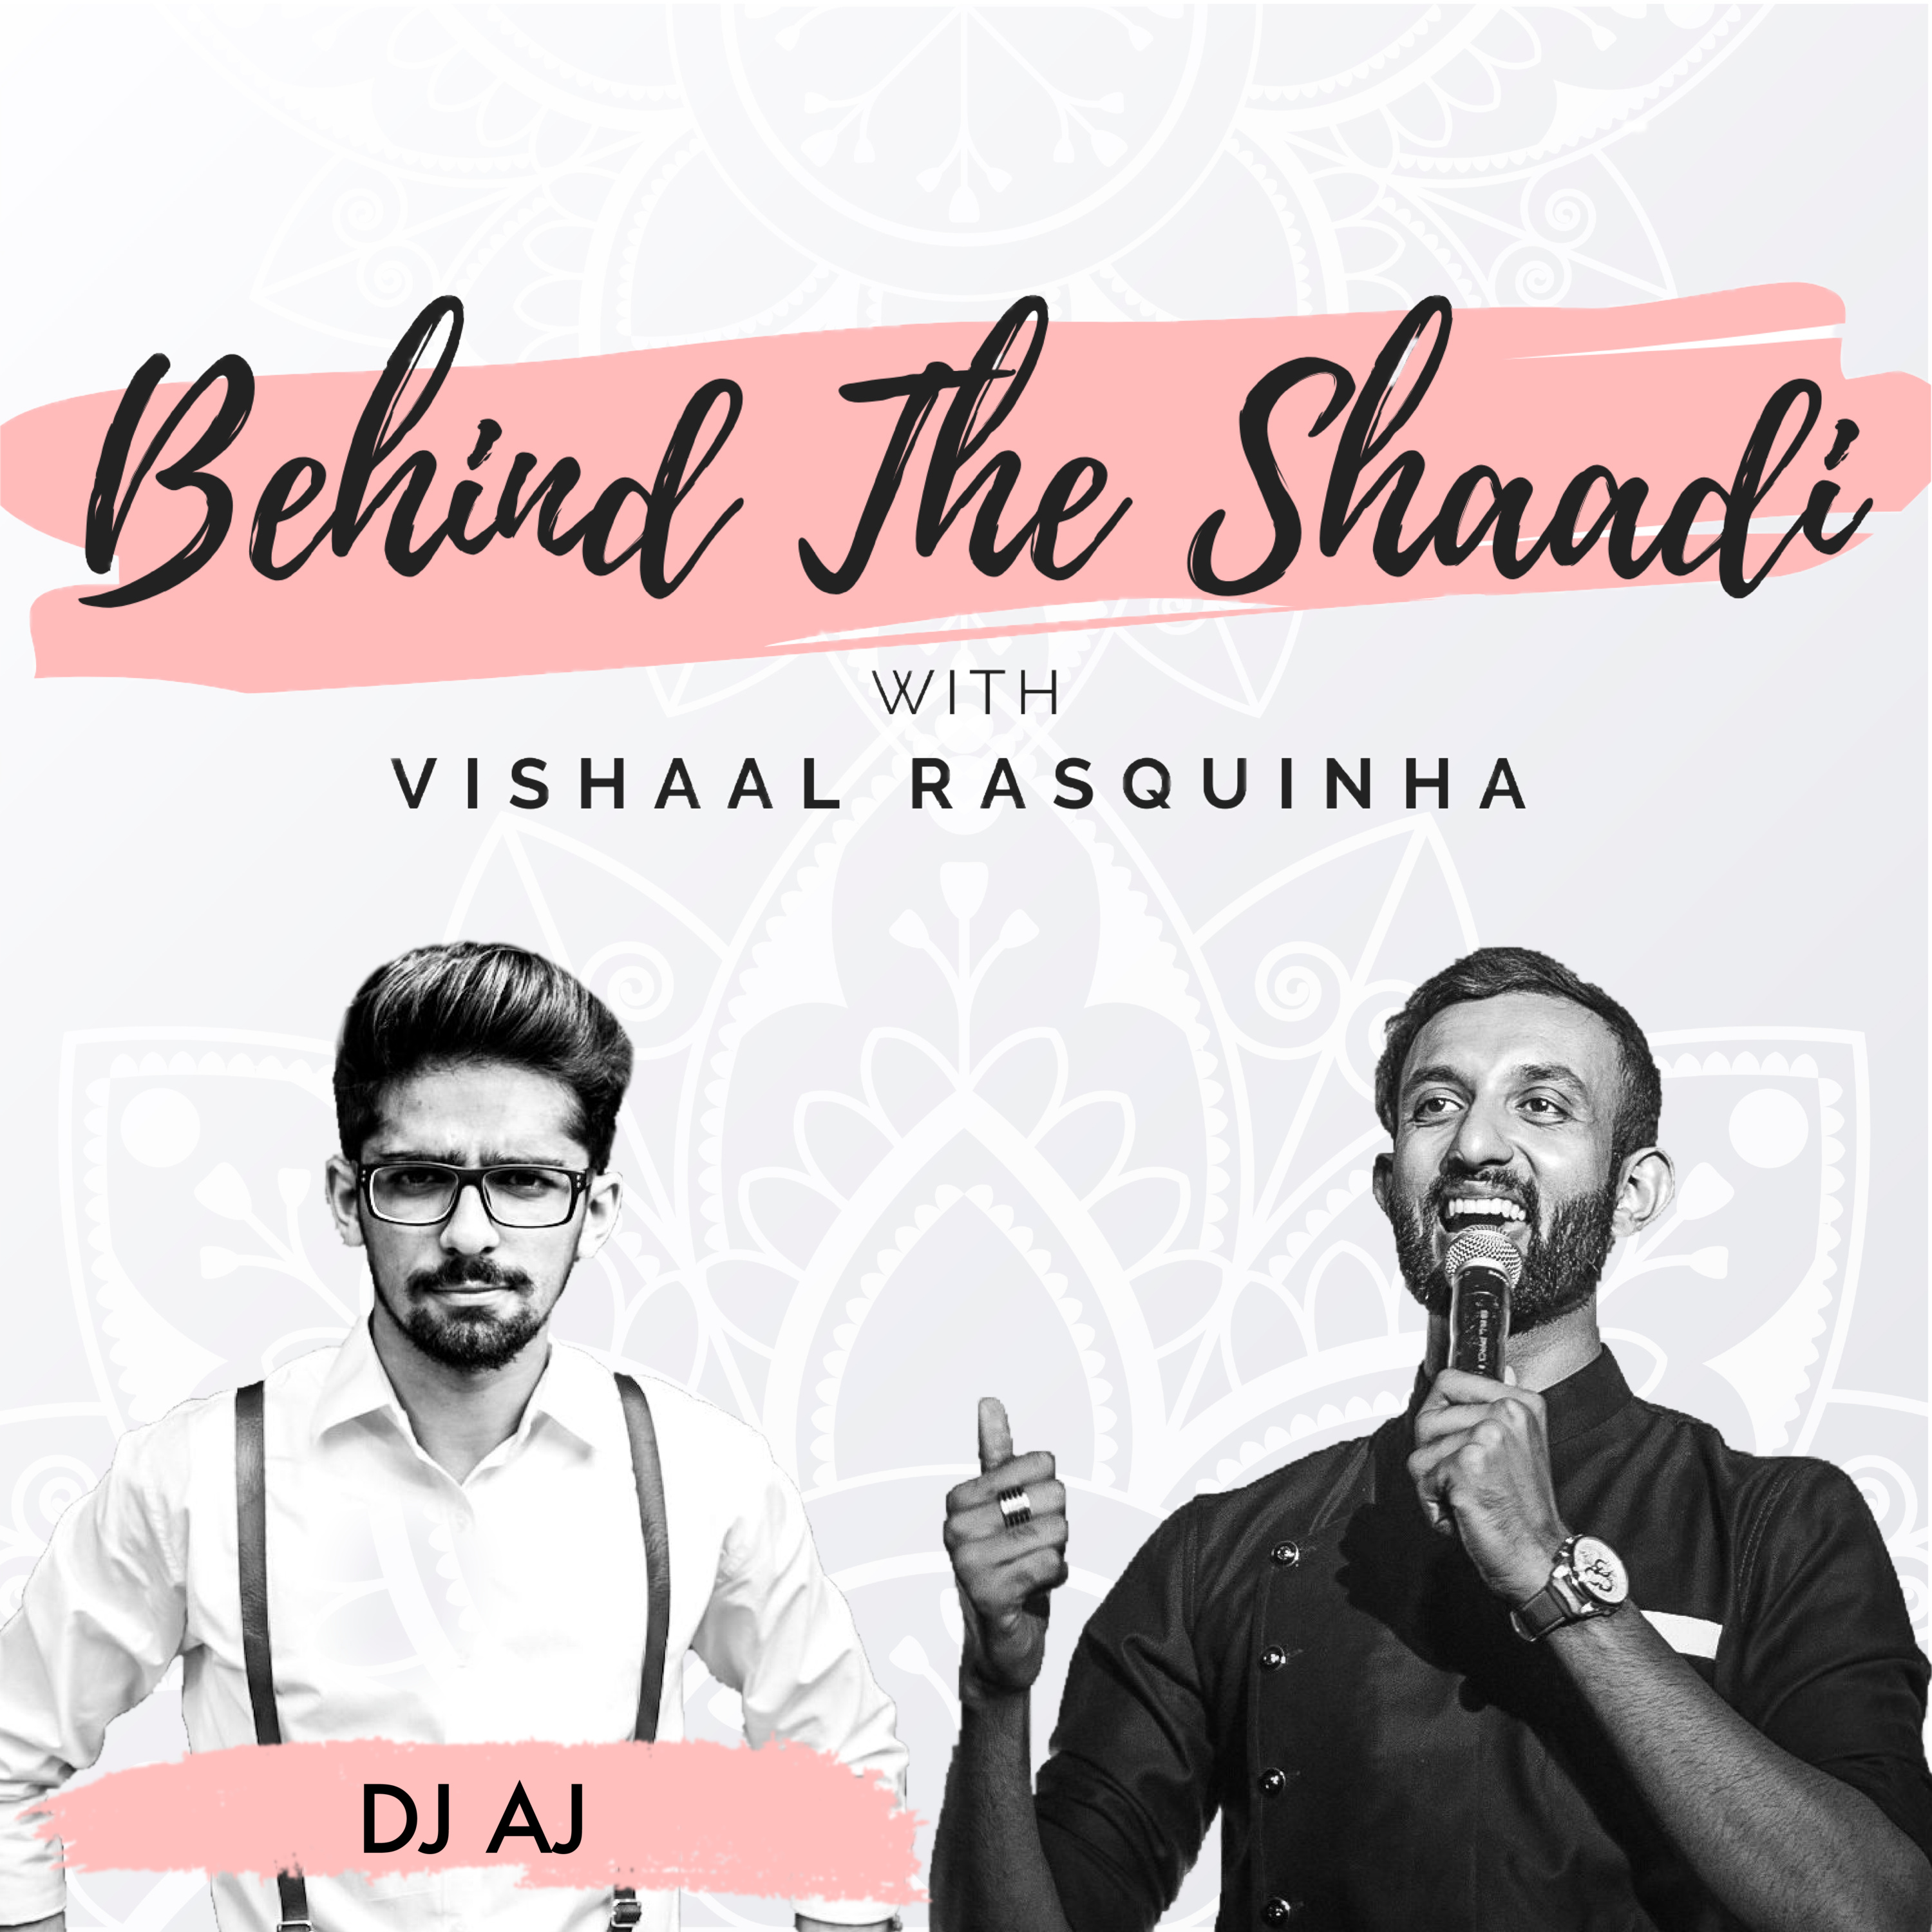 Arjun Shah aka DJ AJ: Changing the game for electronic music from global gigs to Indian weddings